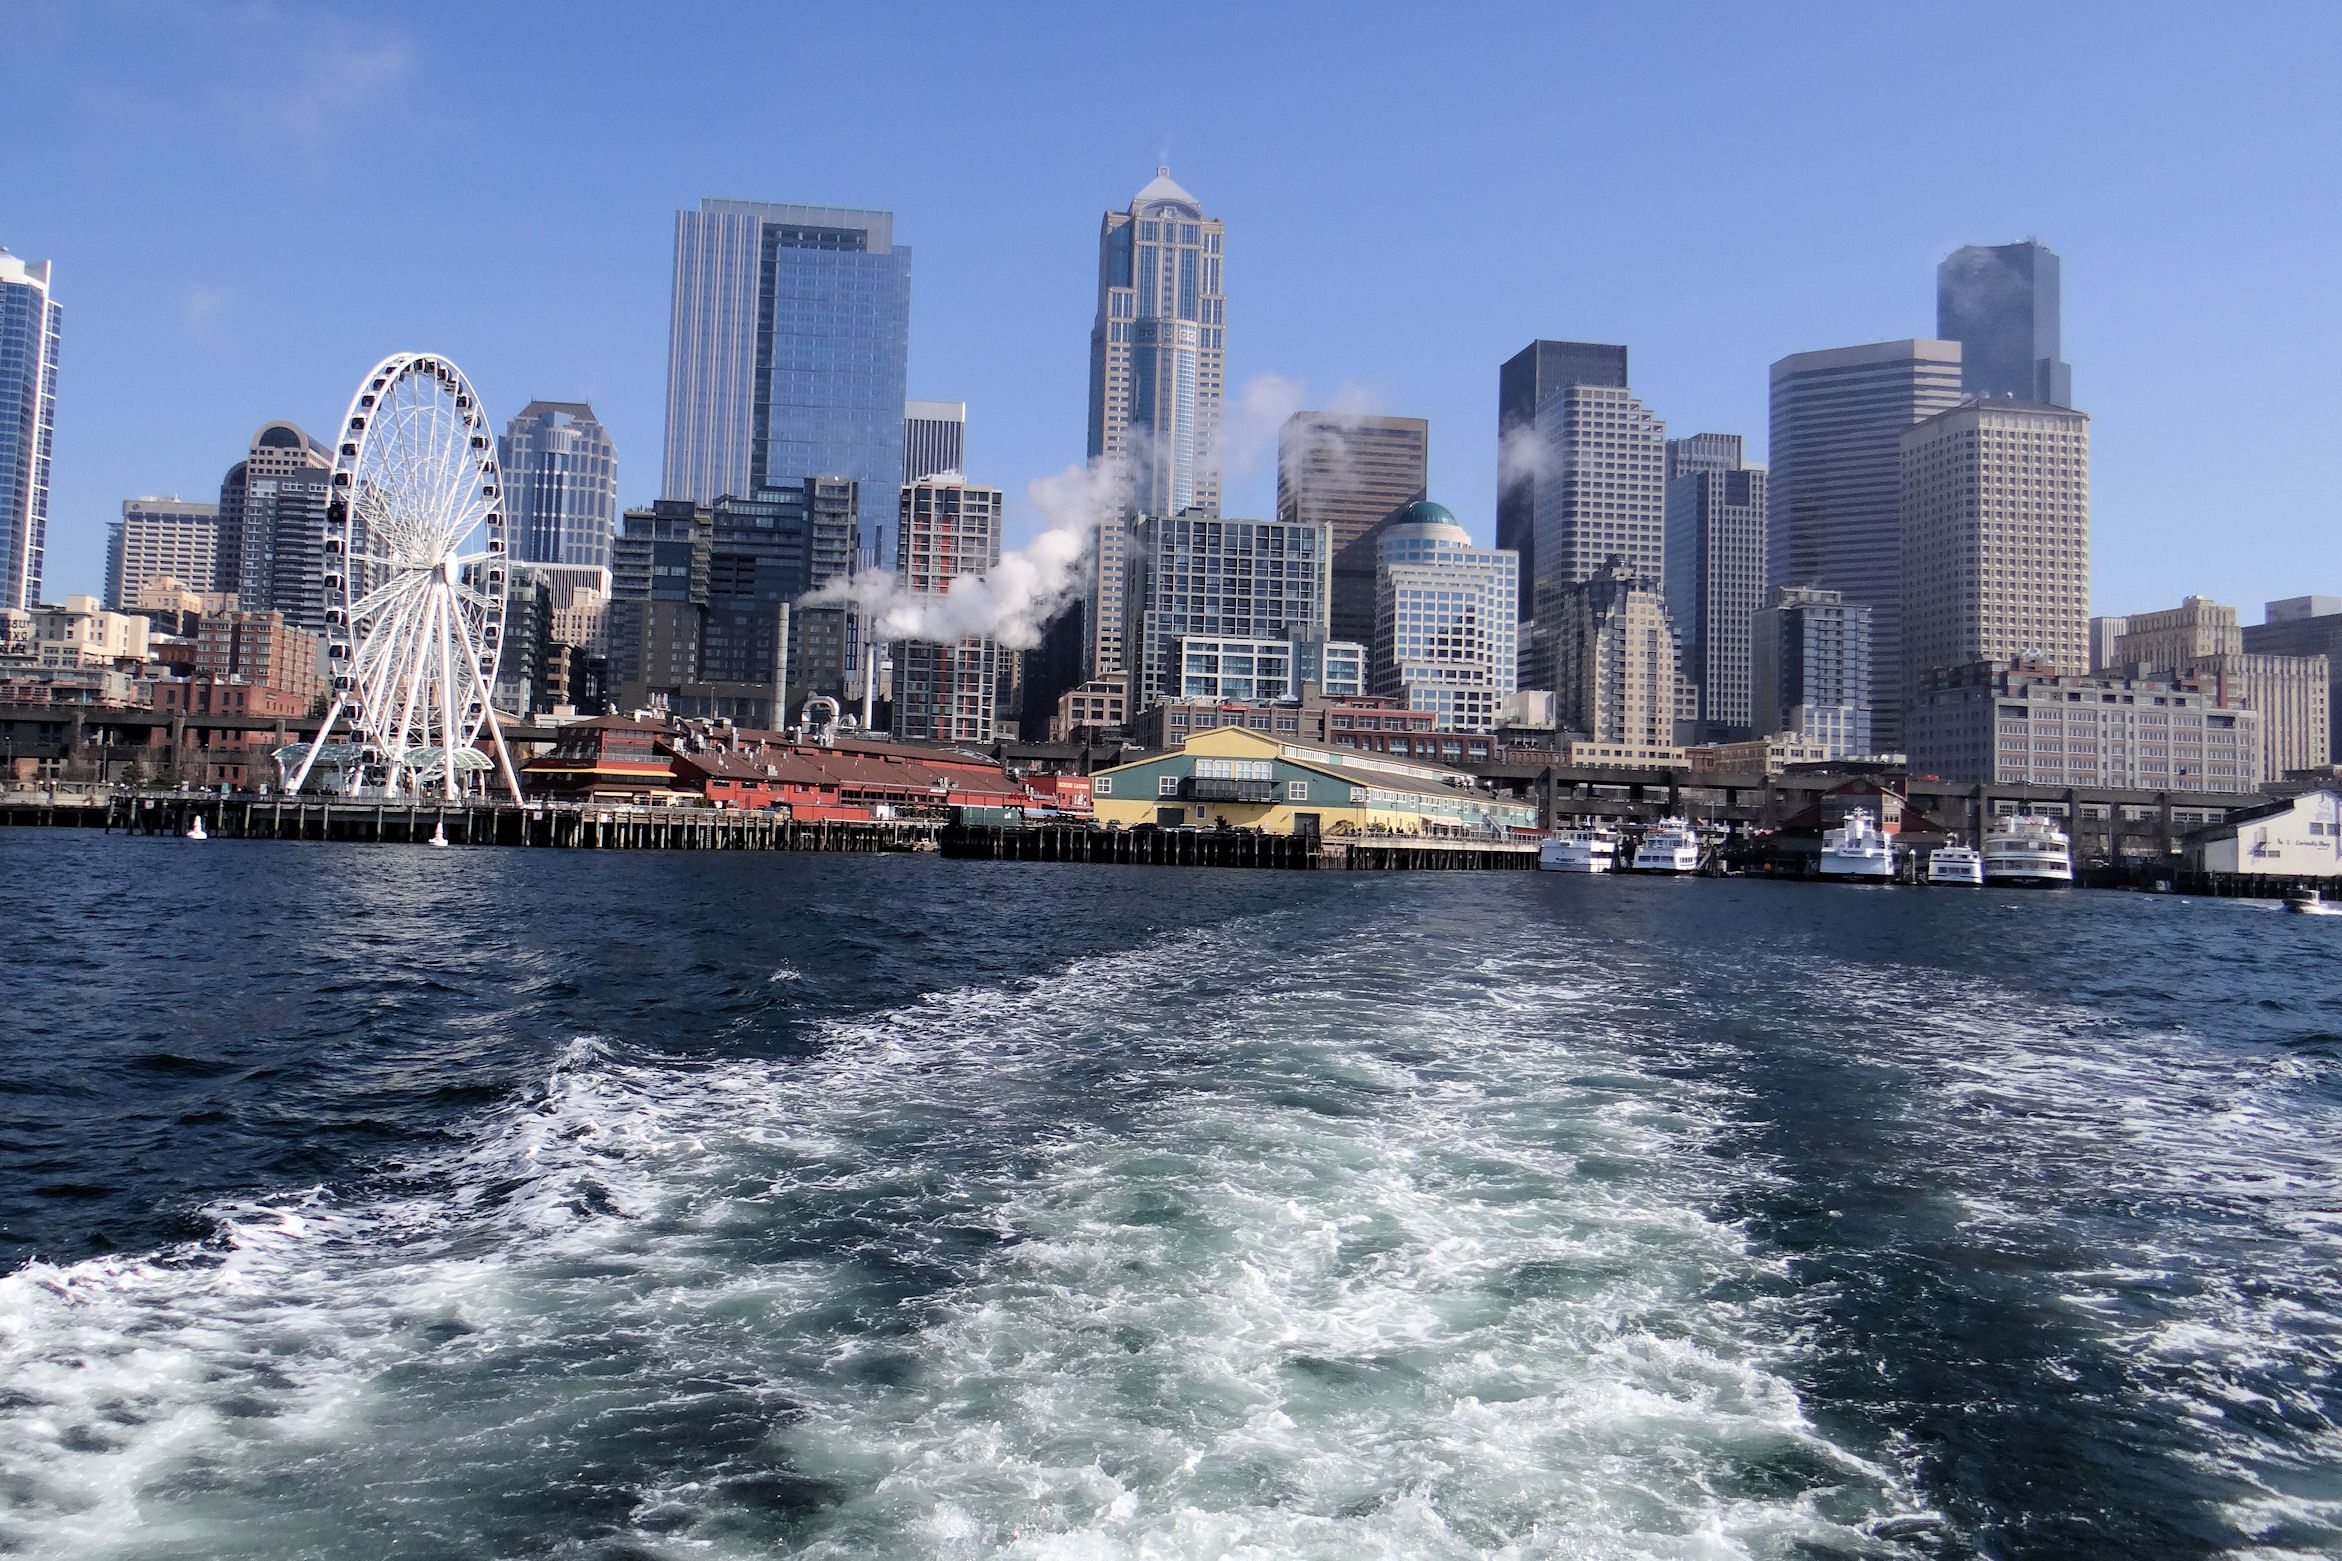 """On the Boat """"The Good Times"""" Leaving Seattle pier 55"""